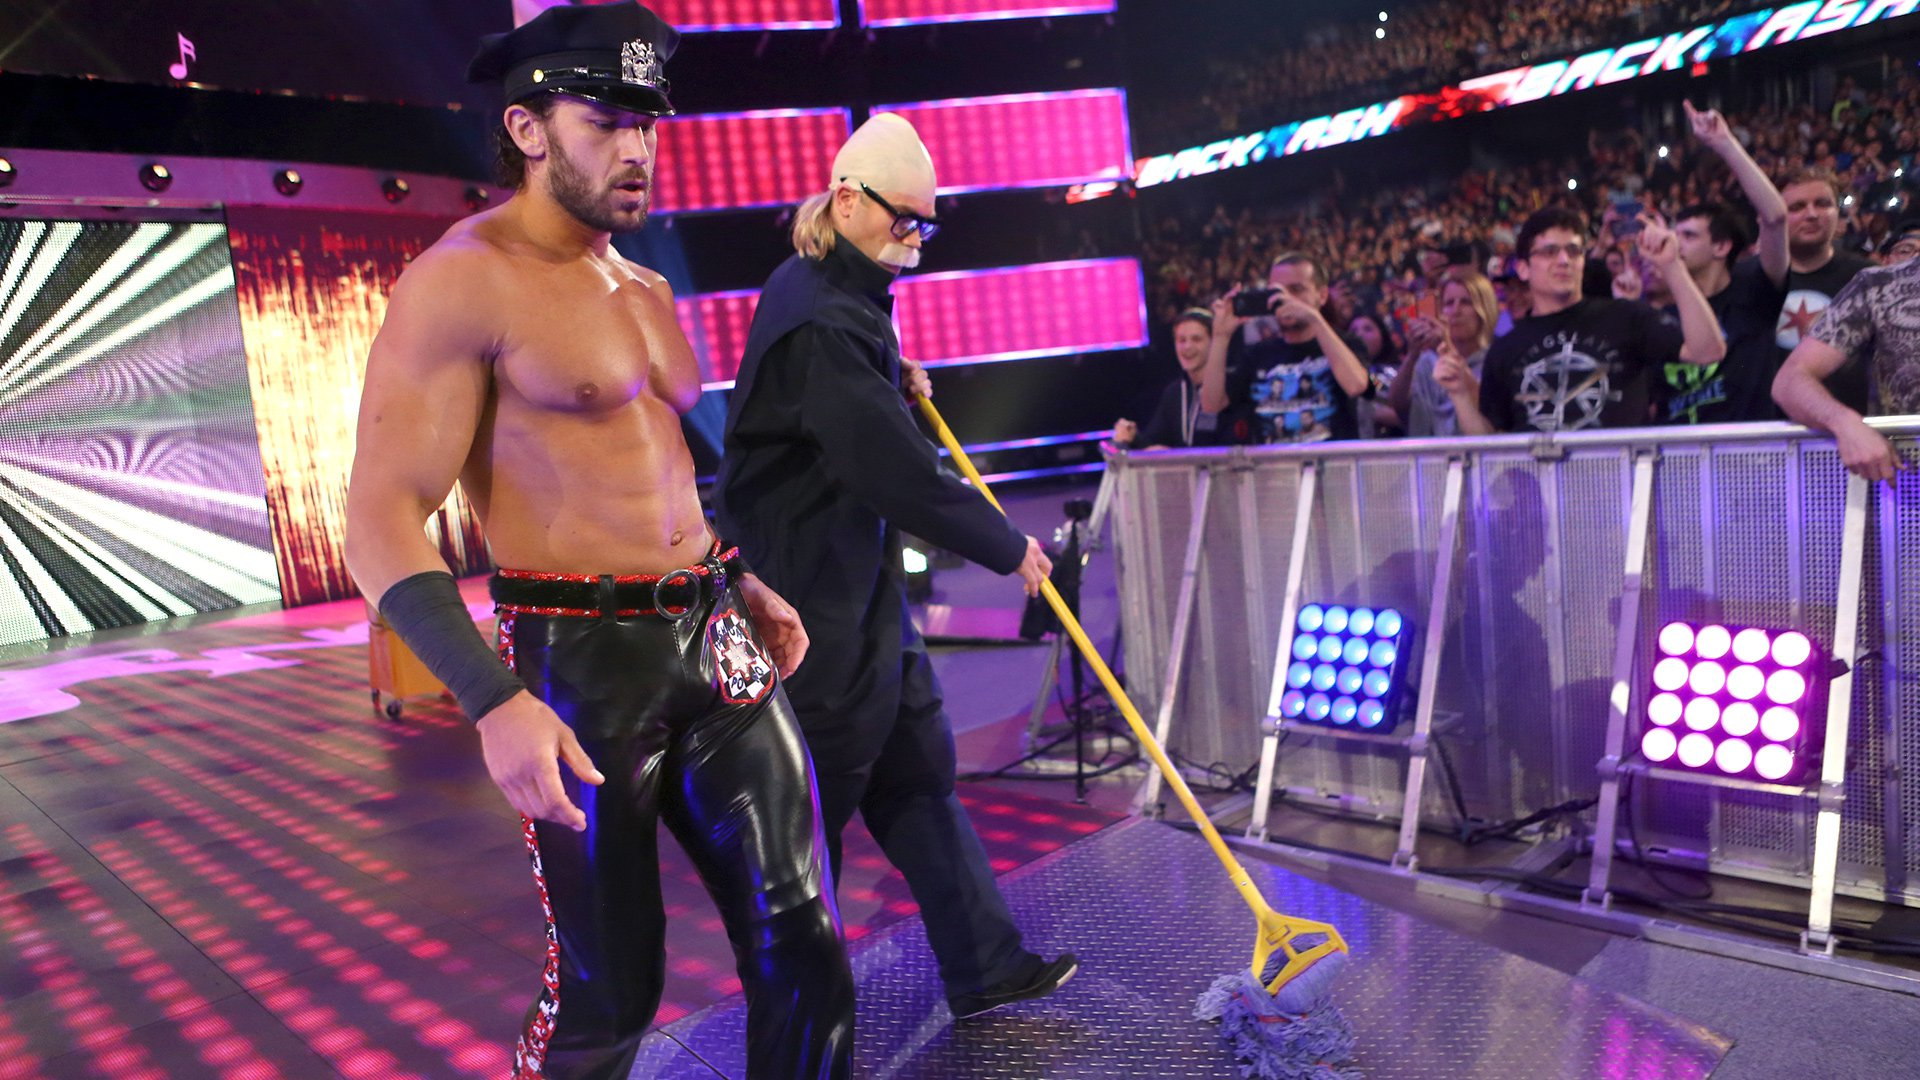 Fandango and an undercover Tyler Breeze make their way to the ring.